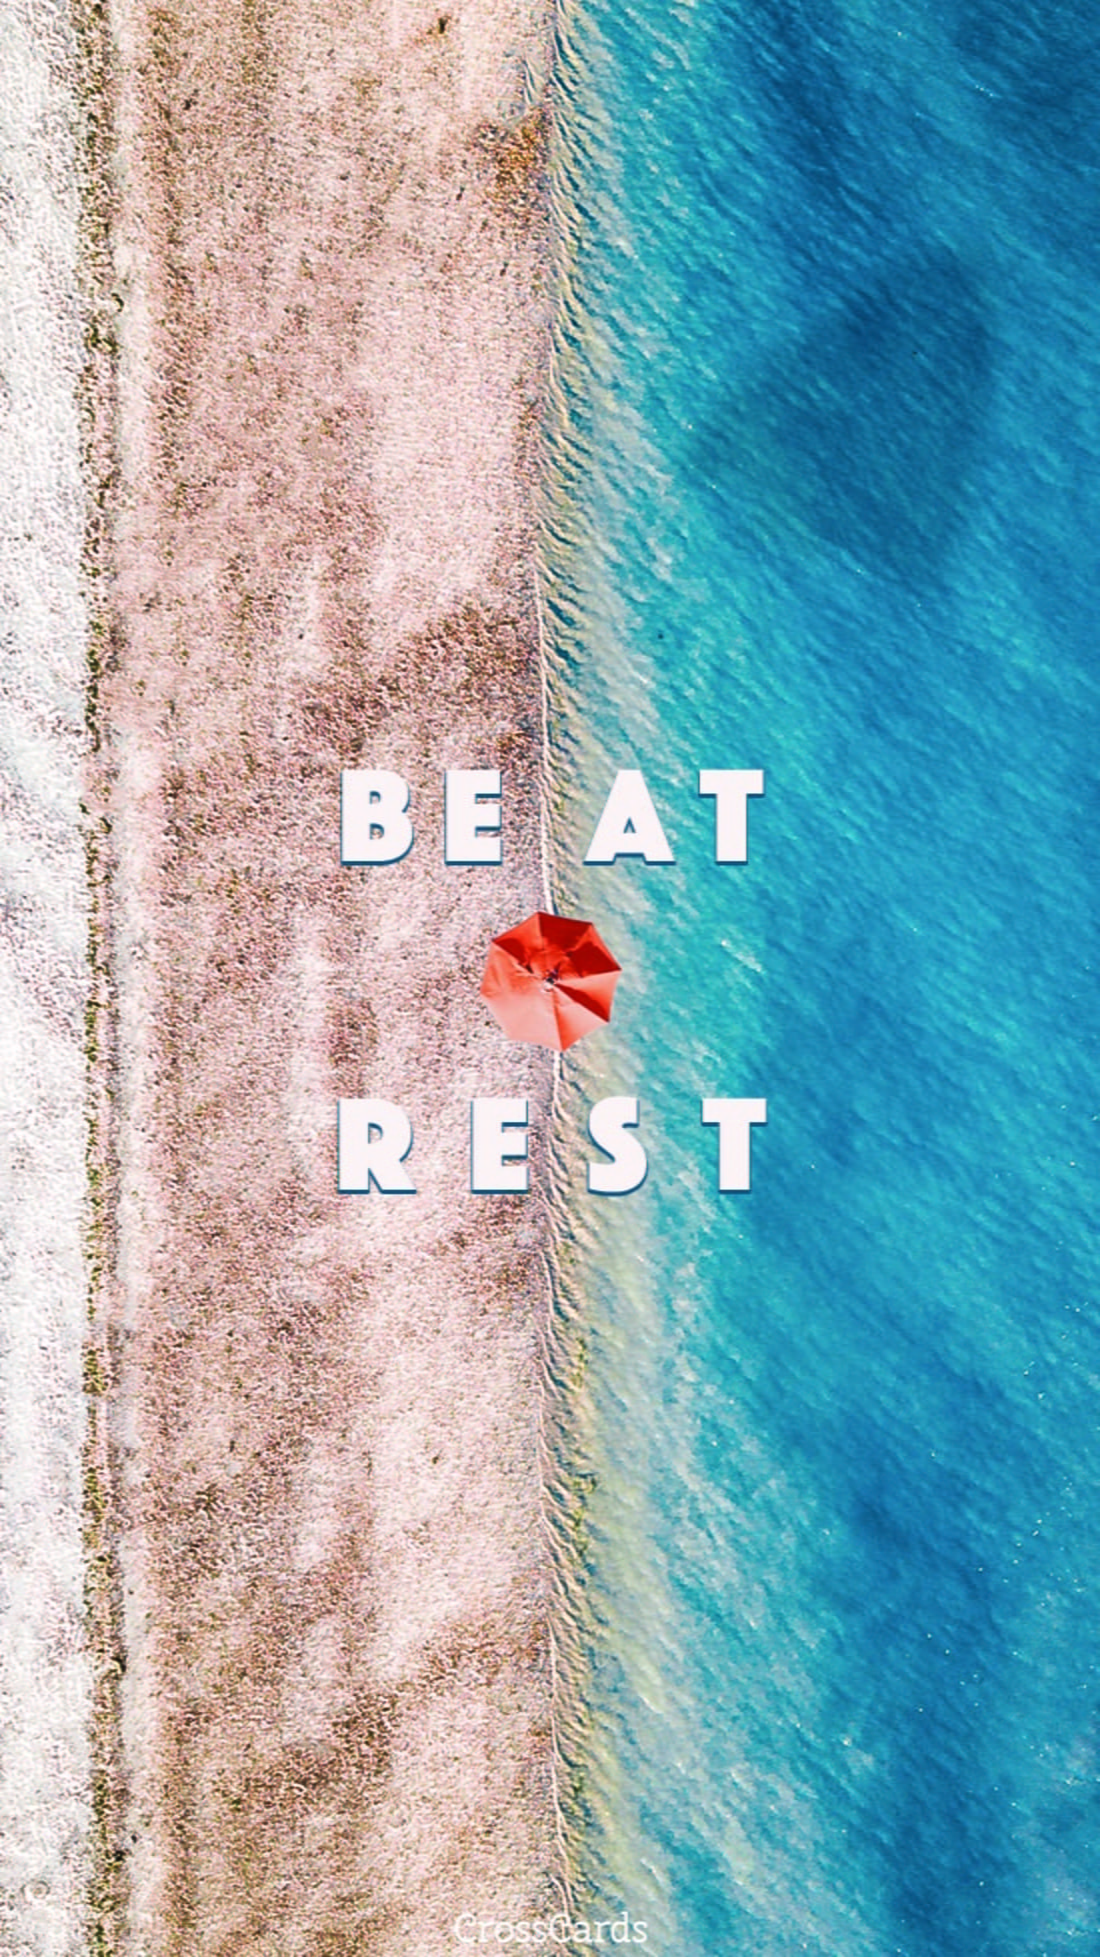 Be At Rest ecard, online card